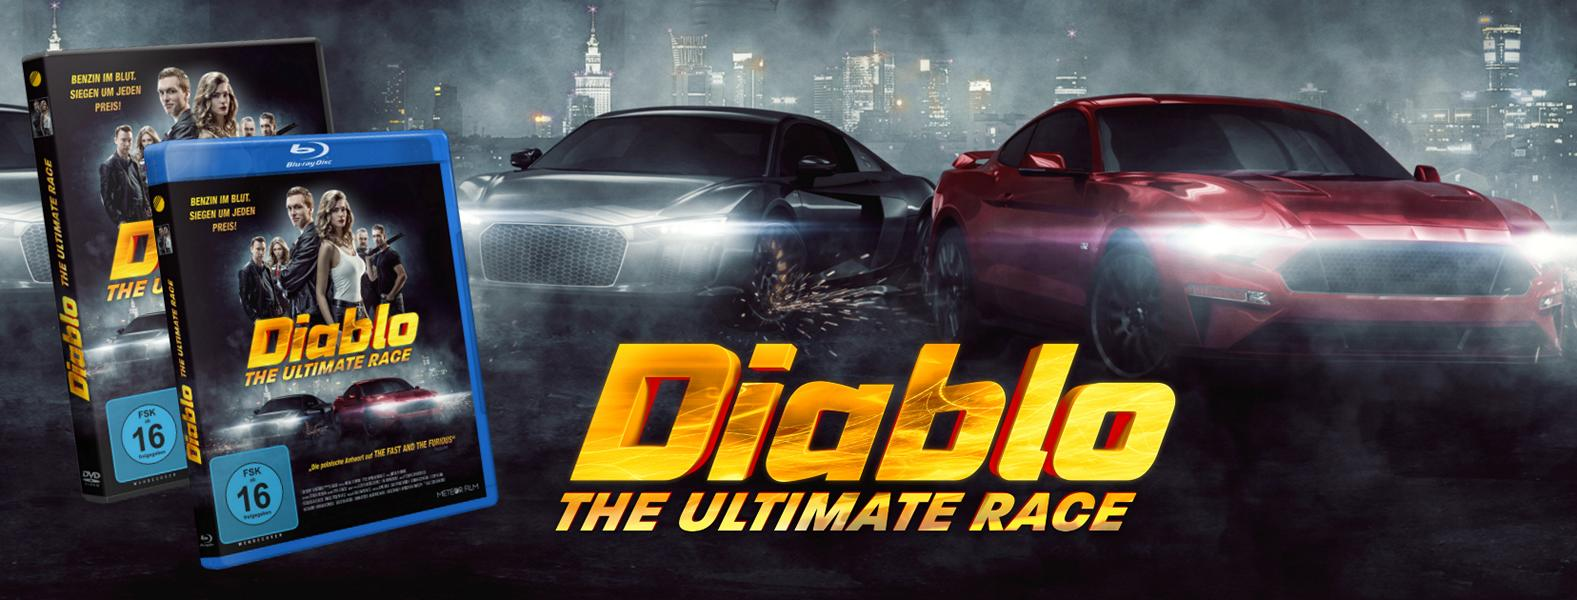 DIABLO – The ultimate Race DVD Tuning 3 Action pur: DIABLO – The ultimate Race jetzt auf DVD!